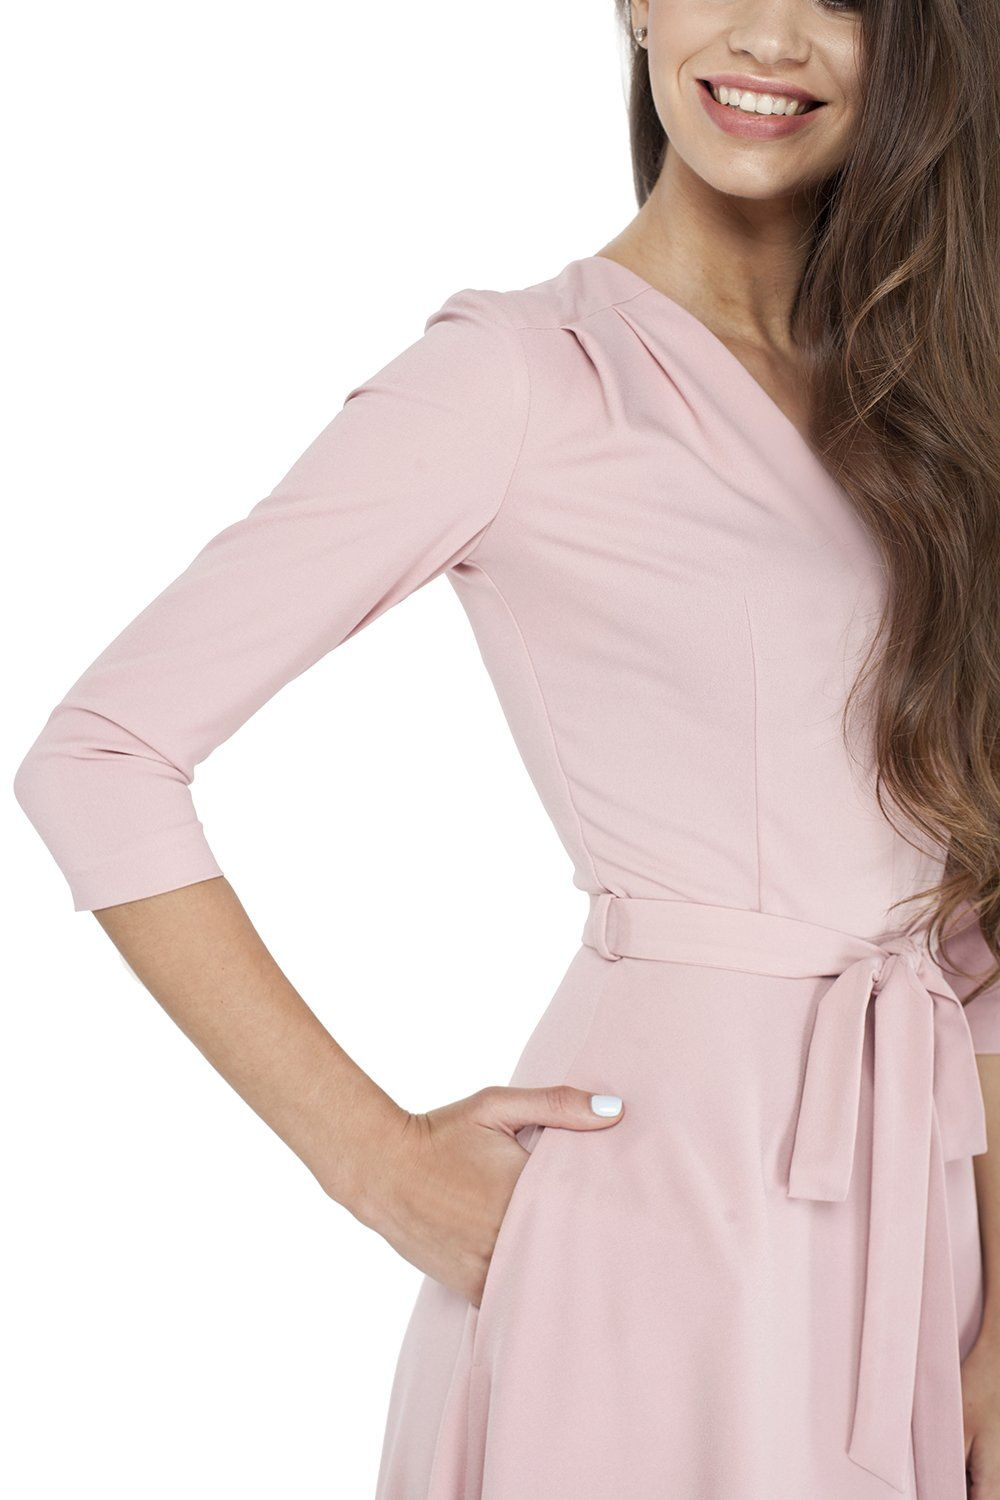 cffa73bf41c VILONNA Womens Elegant 3 4 Sleeve V Neck Belted Semi Formal Midi Dress with  Pockets Blush Pink Large     Take a look at this great product.